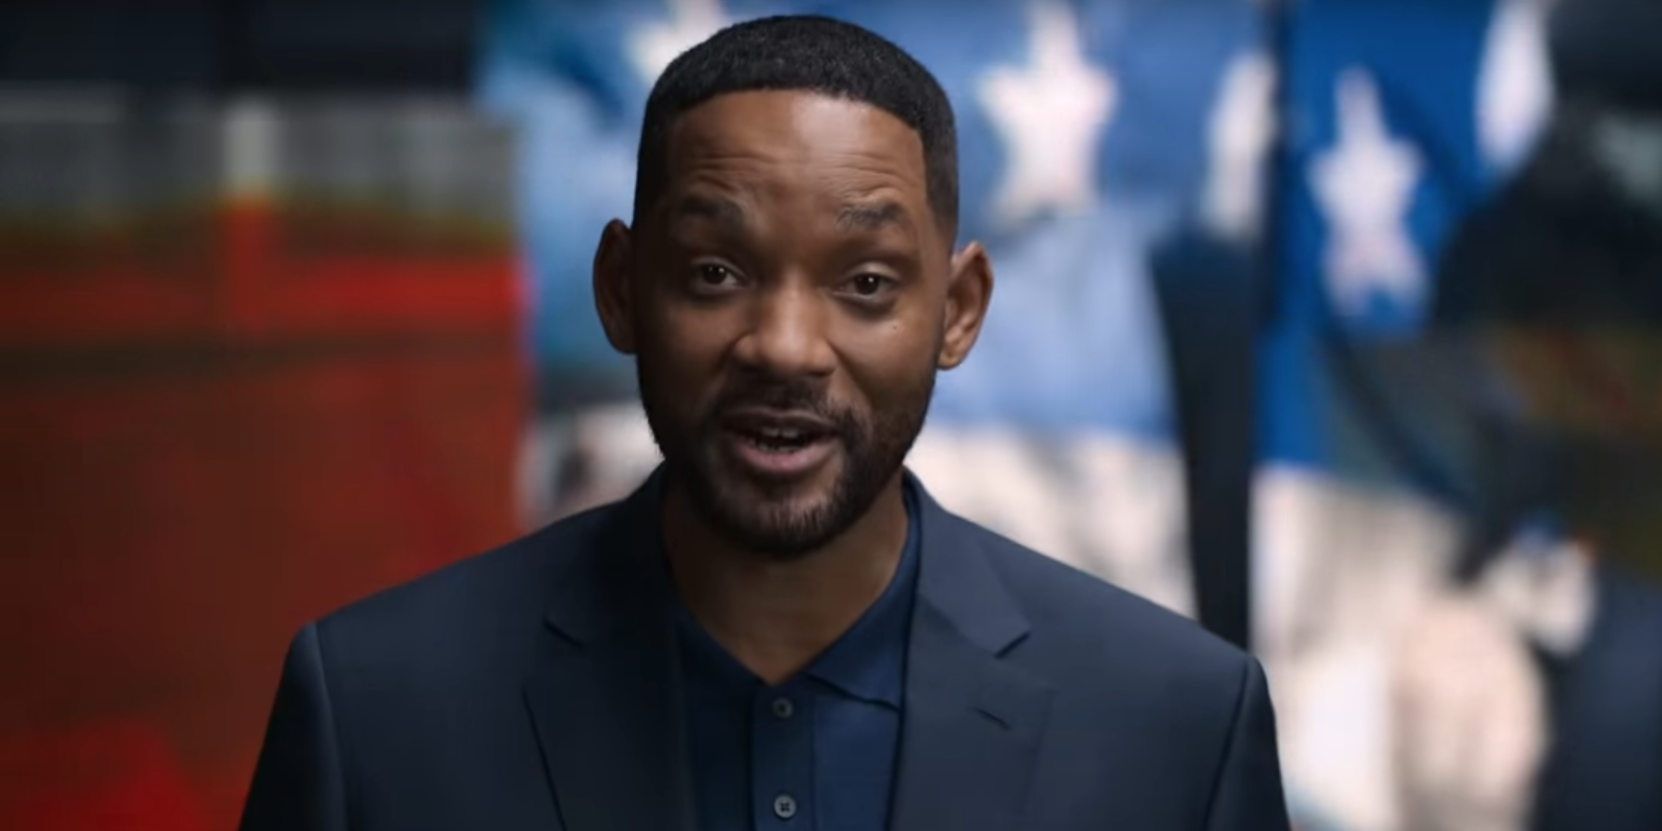 Il trailer della docuserie Netflix Amend, narrata da Will Smith